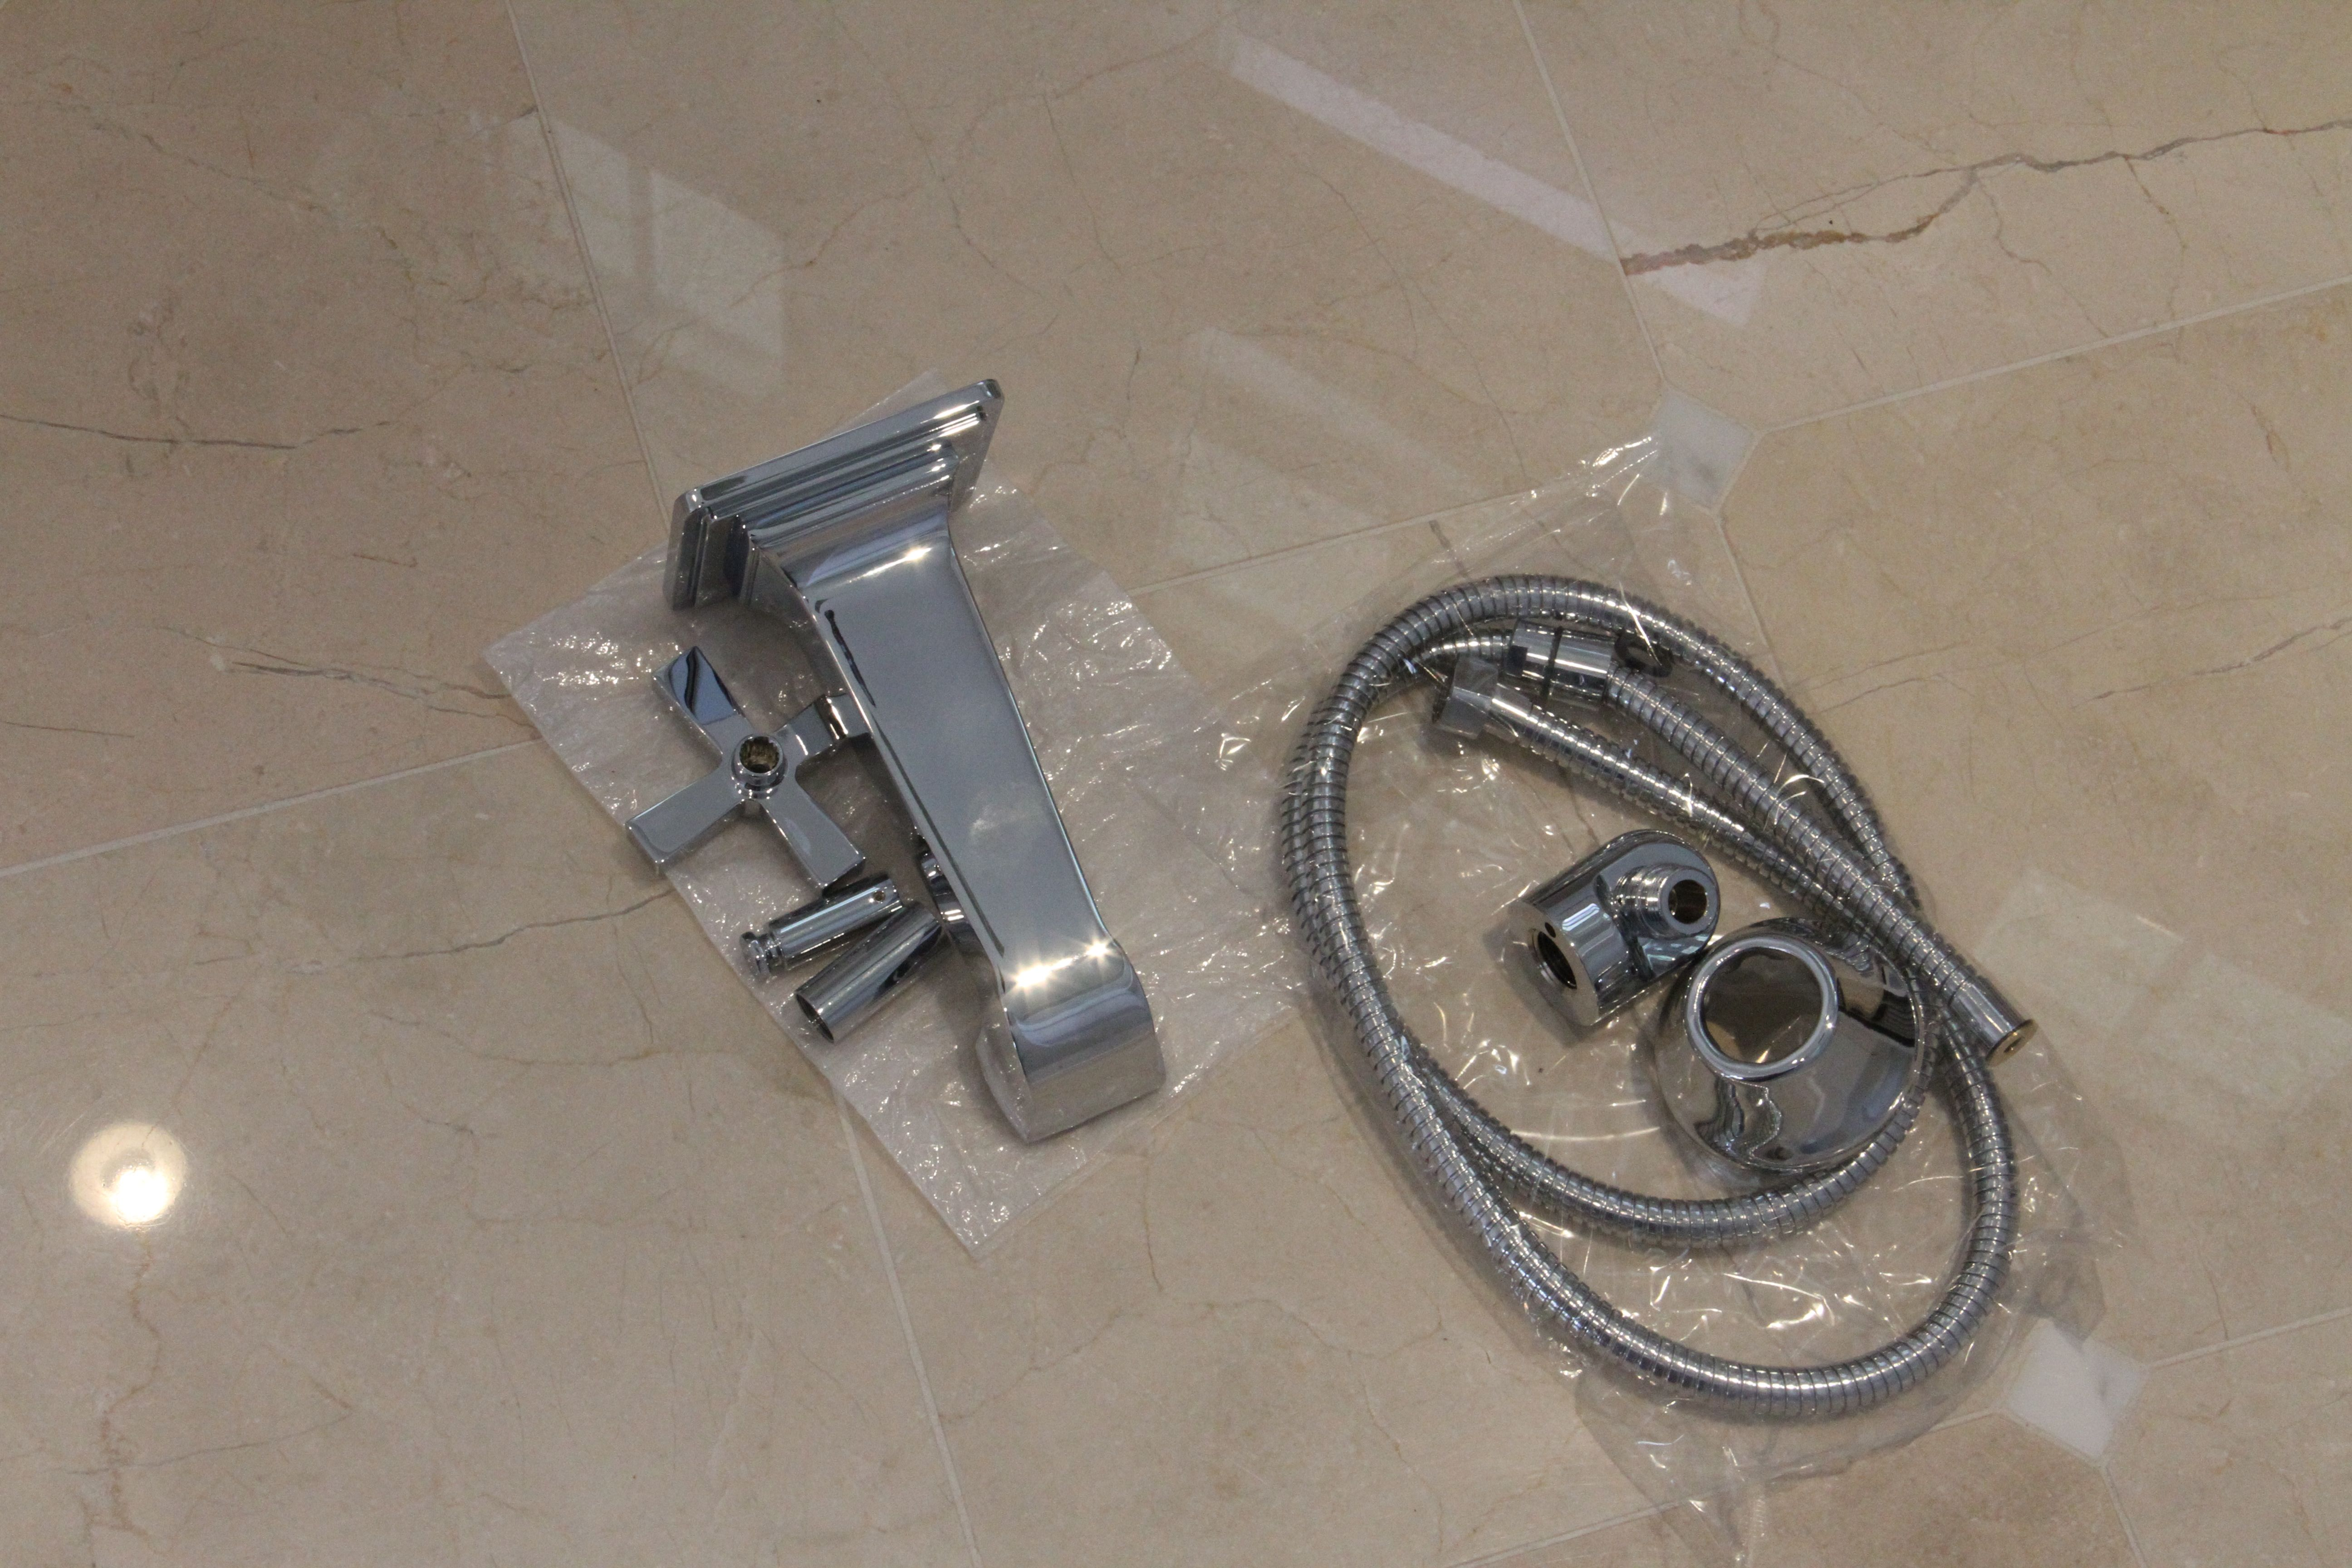 A peek at the tub faucet and body spray hose.